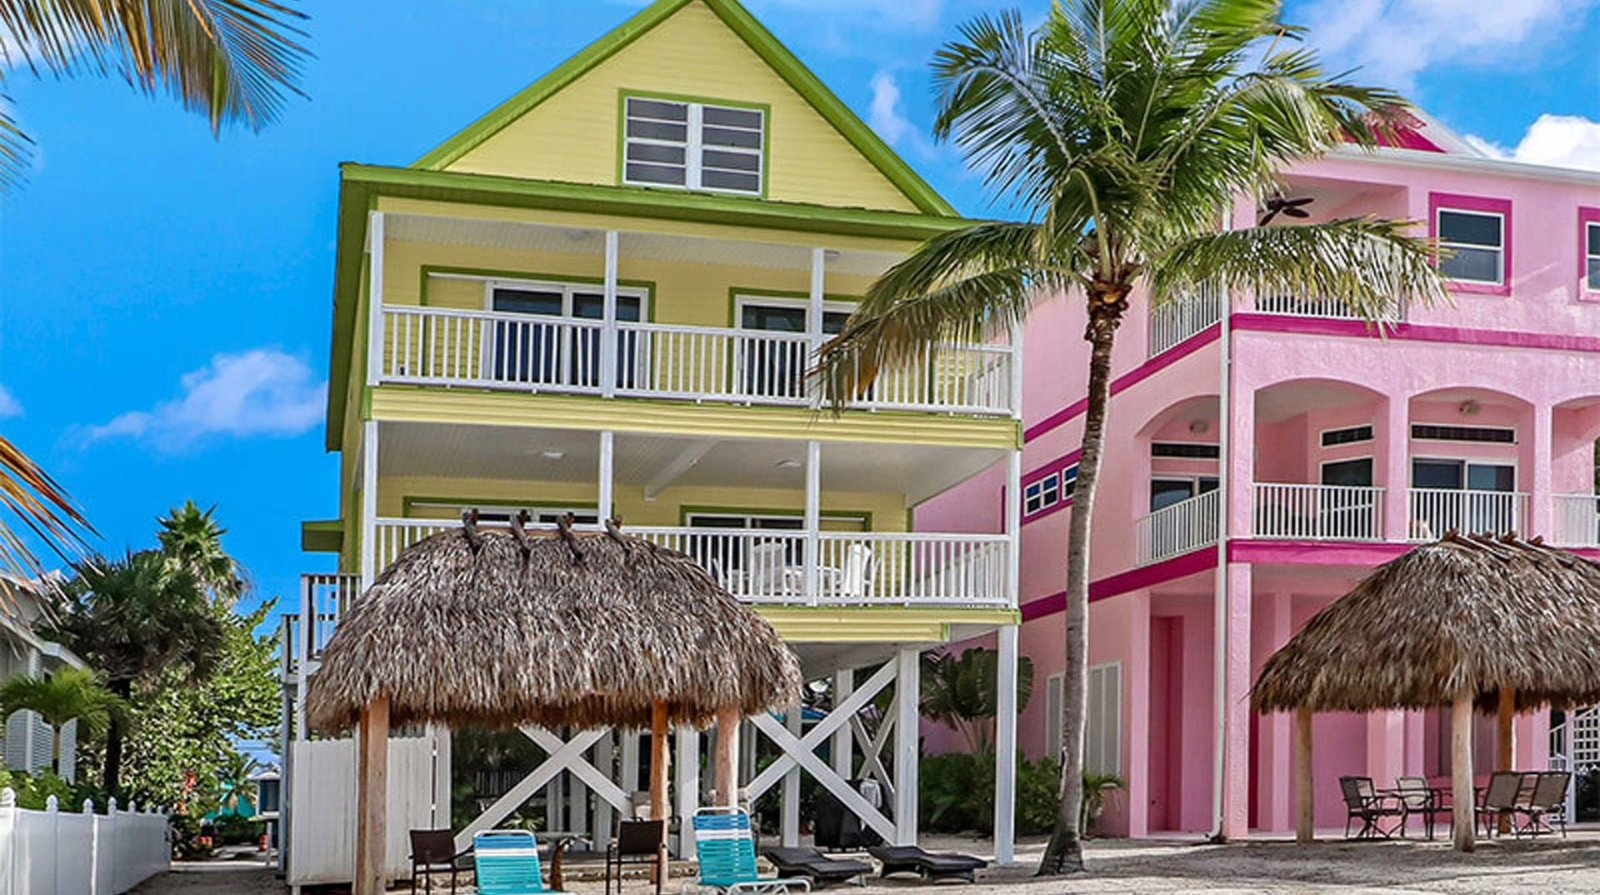 fort myers investment mortgage, fort myers investment mortgage rates, fort myers investment mortgage broker, fort myers investment mortgage lender, mortgage fort myers, fort myers investment mortgage,